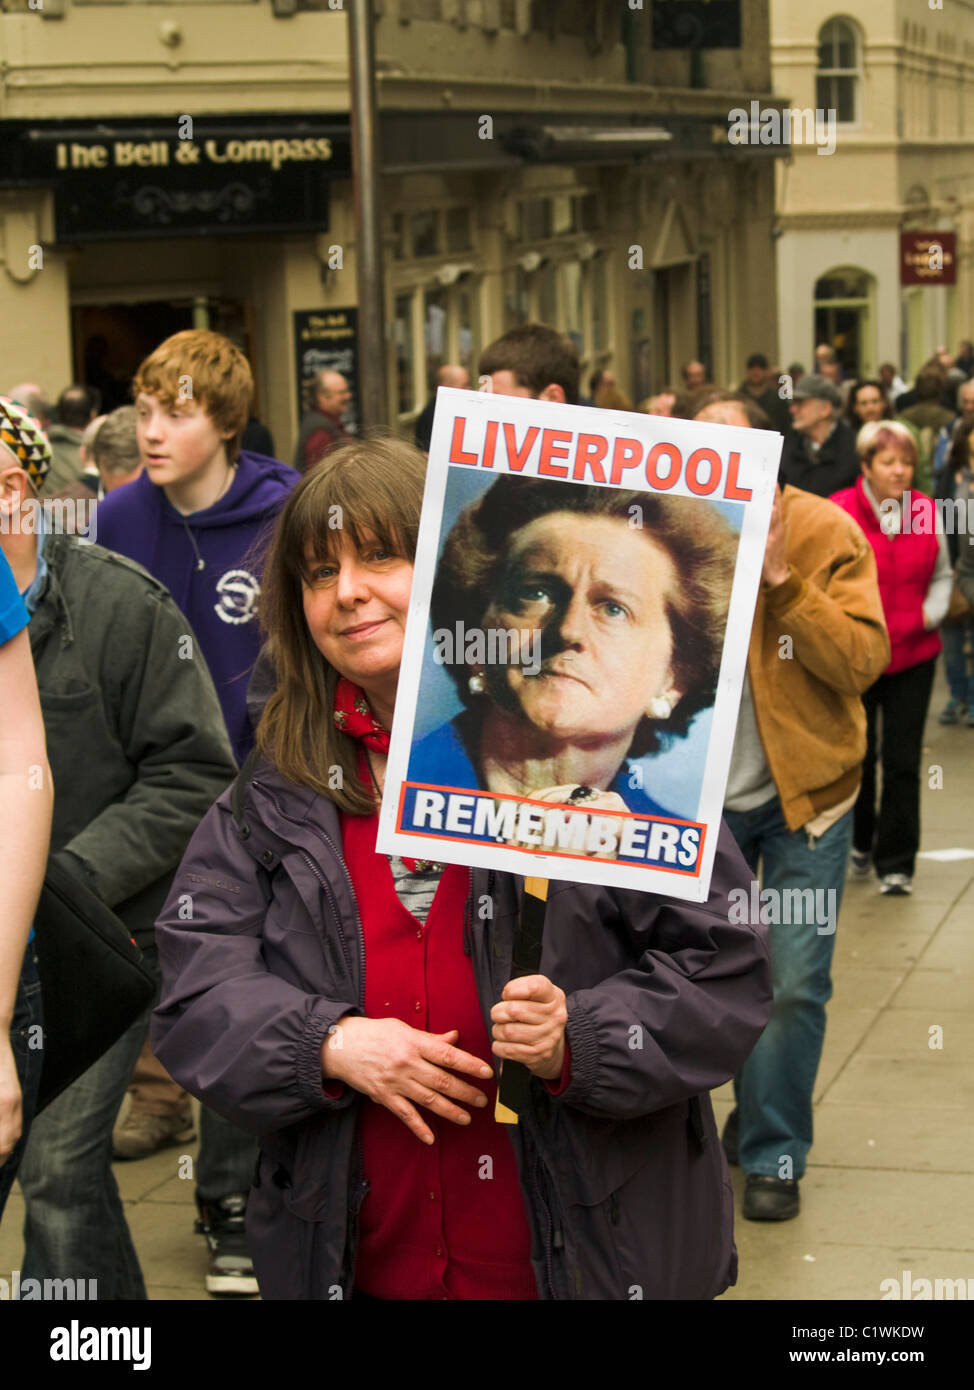 Protester taking part in a demonstration against Government cuts in London. - Stock Image